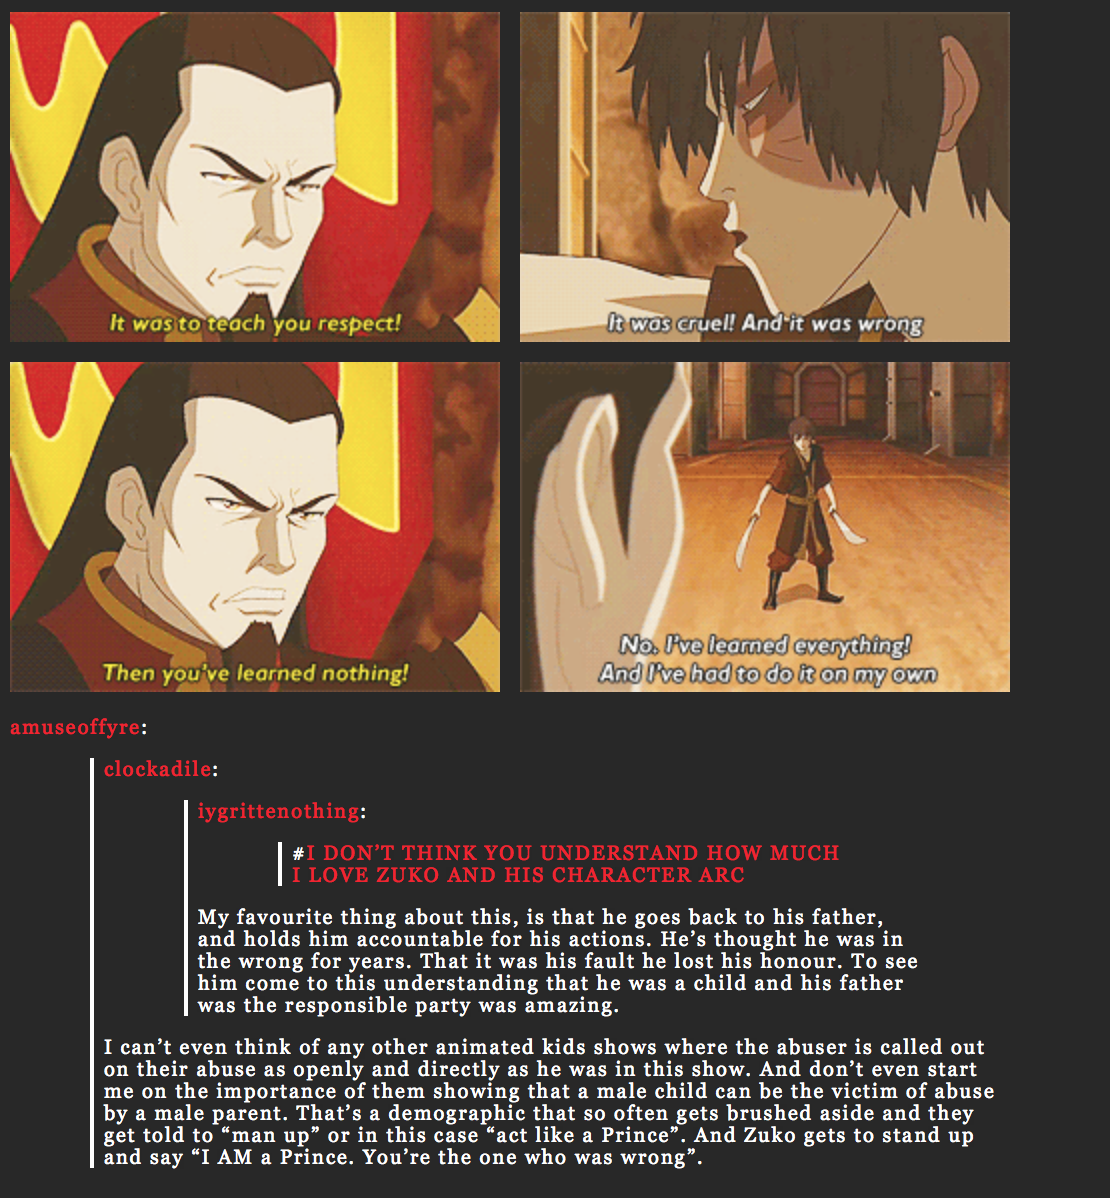 Avatar Airbender: Zuko's Development